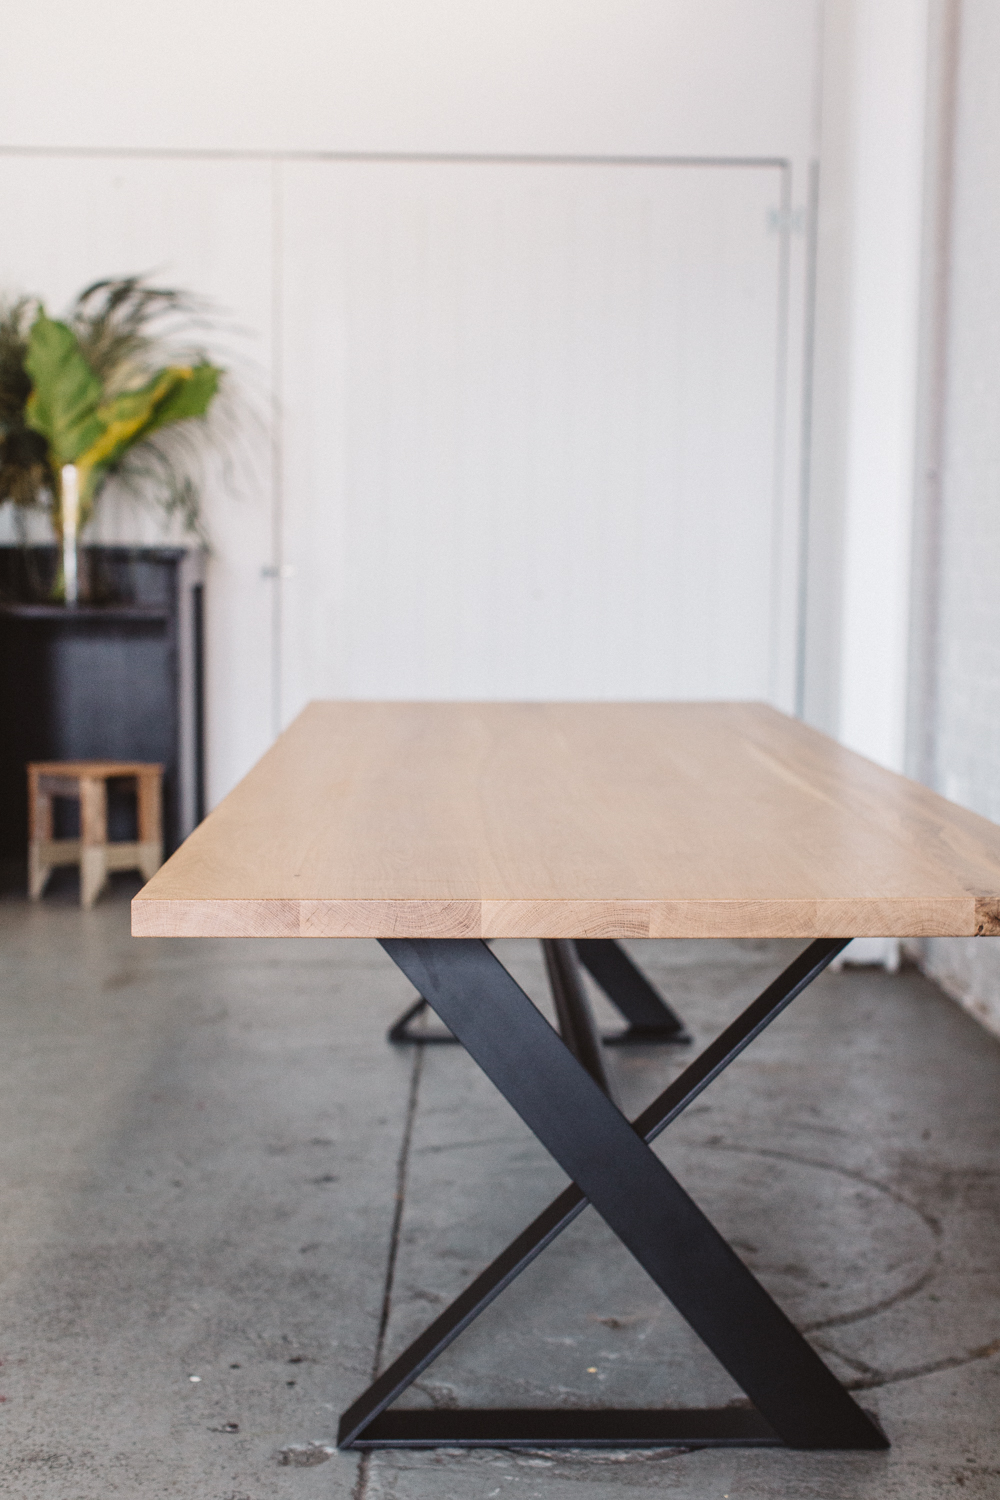 'wambrook' top in american oak + 'cross' base in black steel / Designed via the #designyourown table builder